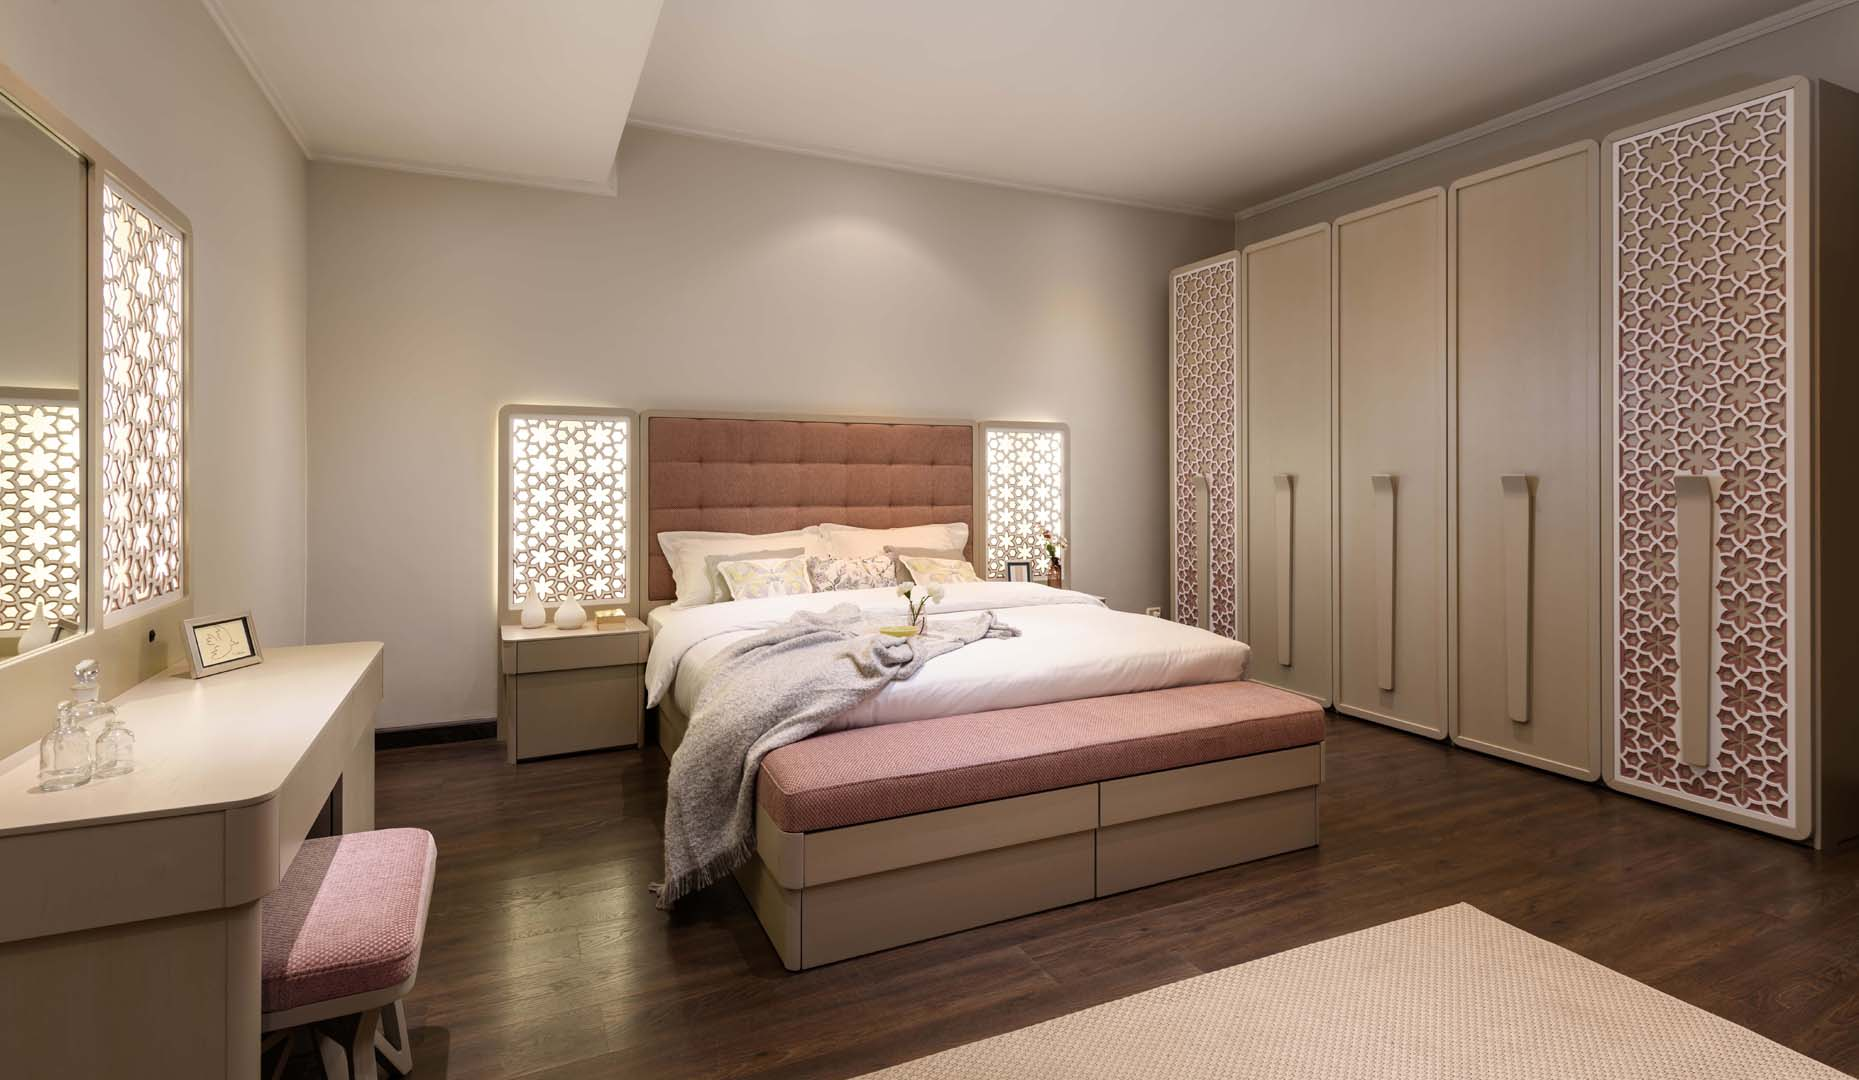 Andalusia bedroom - Pinocchio furniture